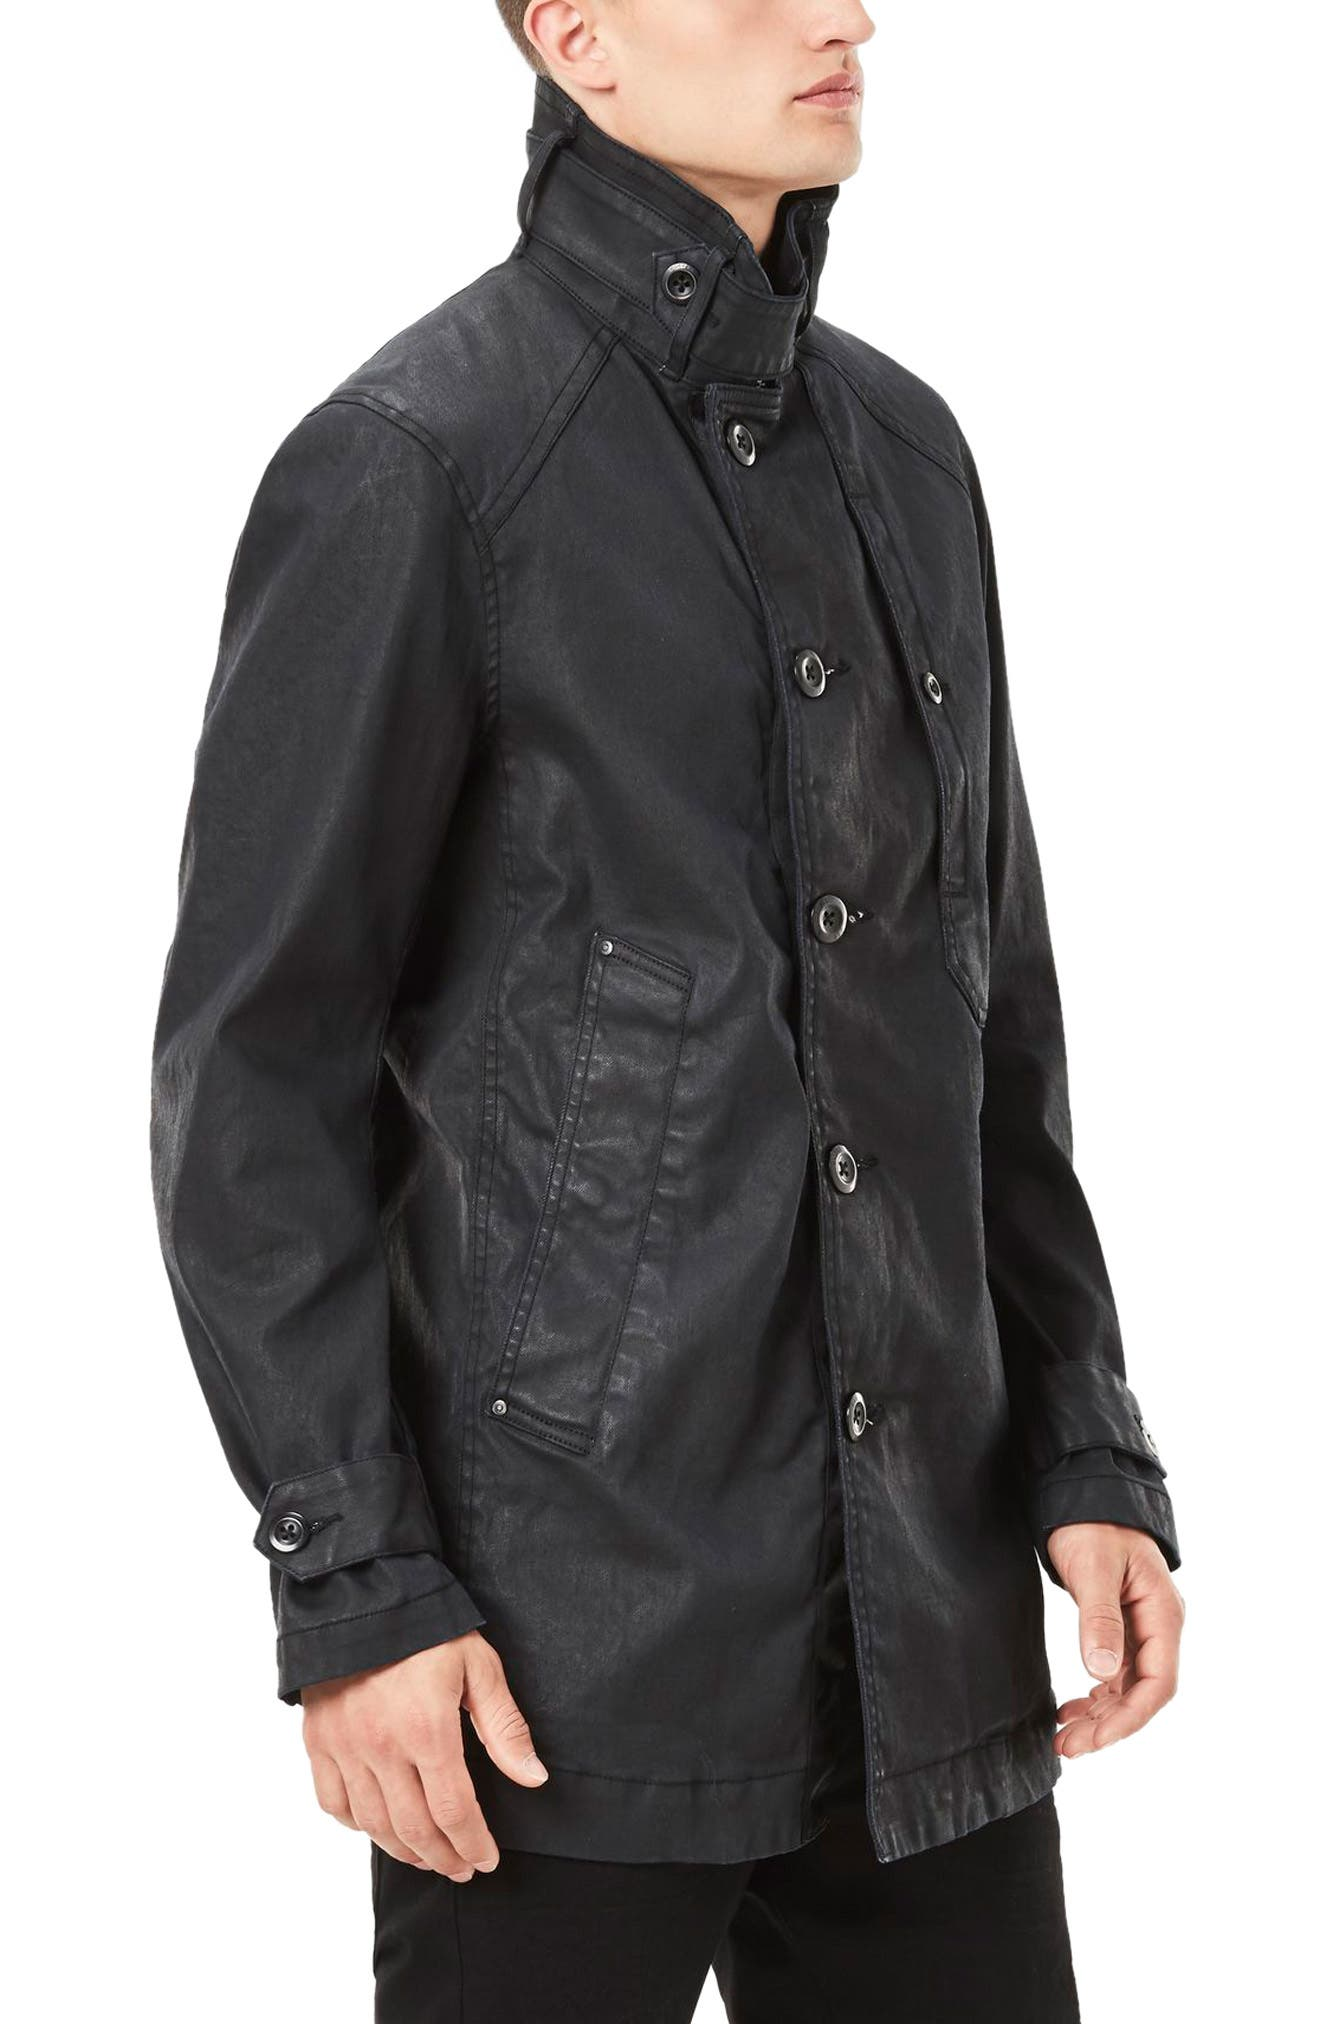 Garber Denim Trench Coat,                             Alternate thumbnail 3, color,                             Dark Aged